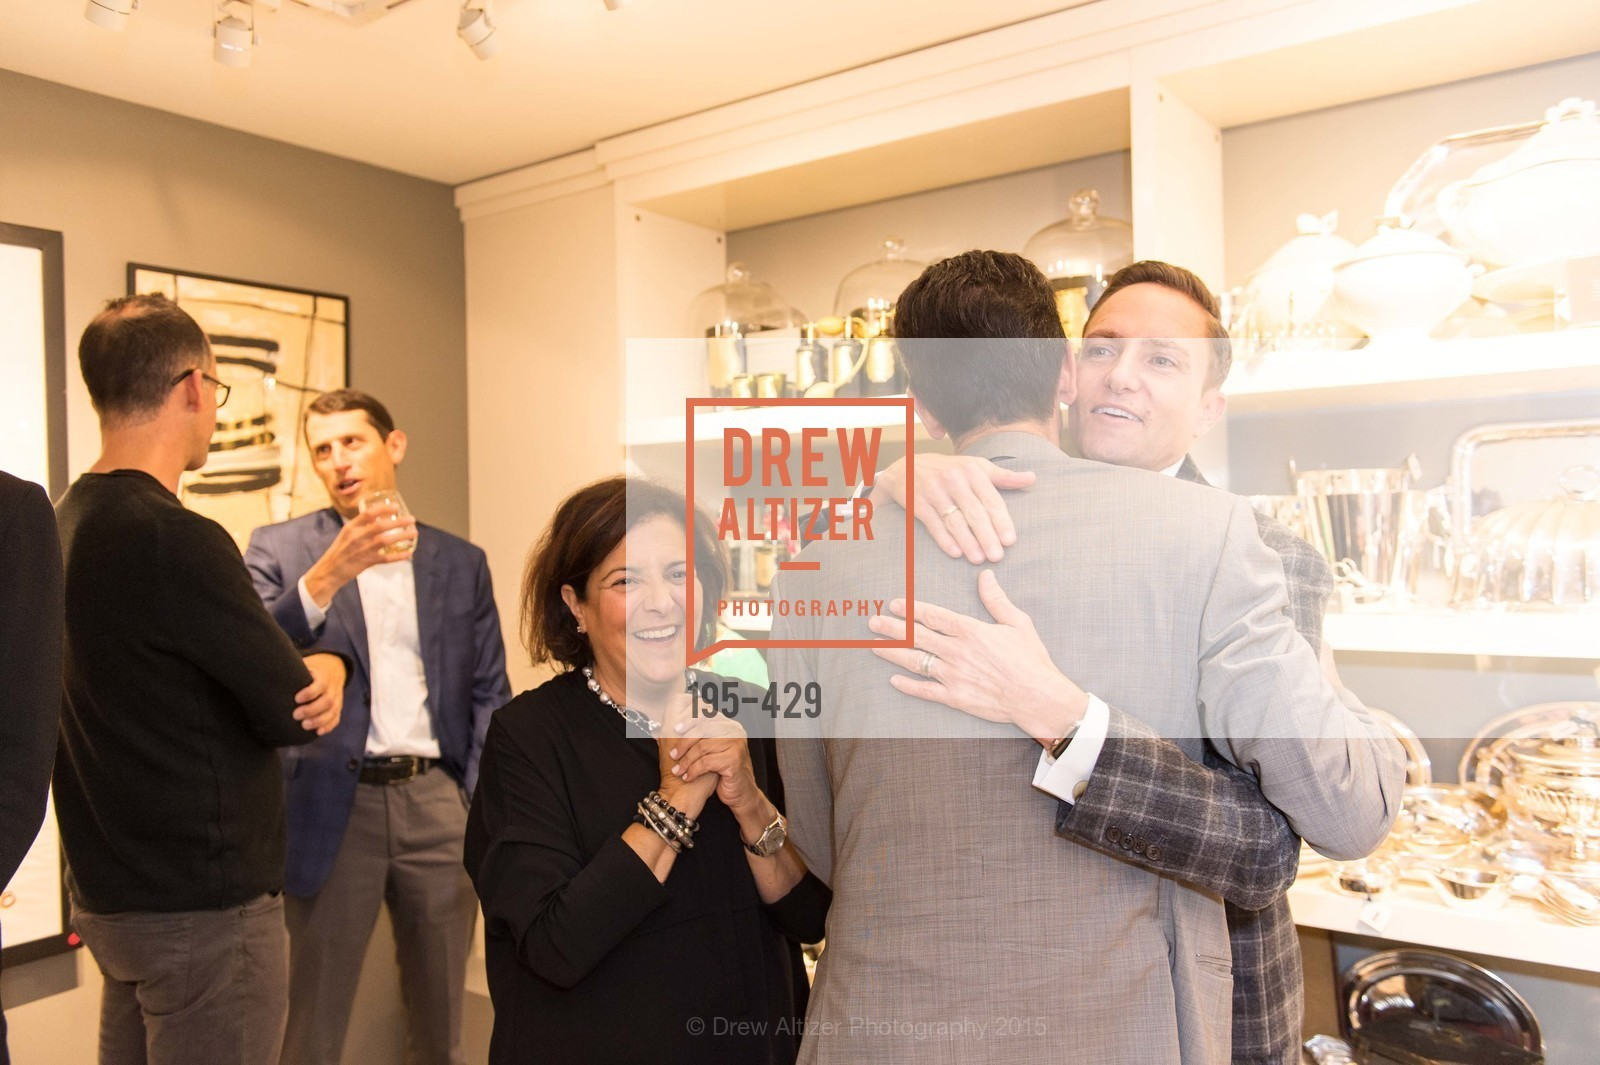 Extras, Celebrating the Publication of Confessions of a Serial Entertainer, October 27th, 2015, Photo,Drew Altizer, Drew Altizer Photography, full-service event agency, private events, San Francisco photographer, photographer California